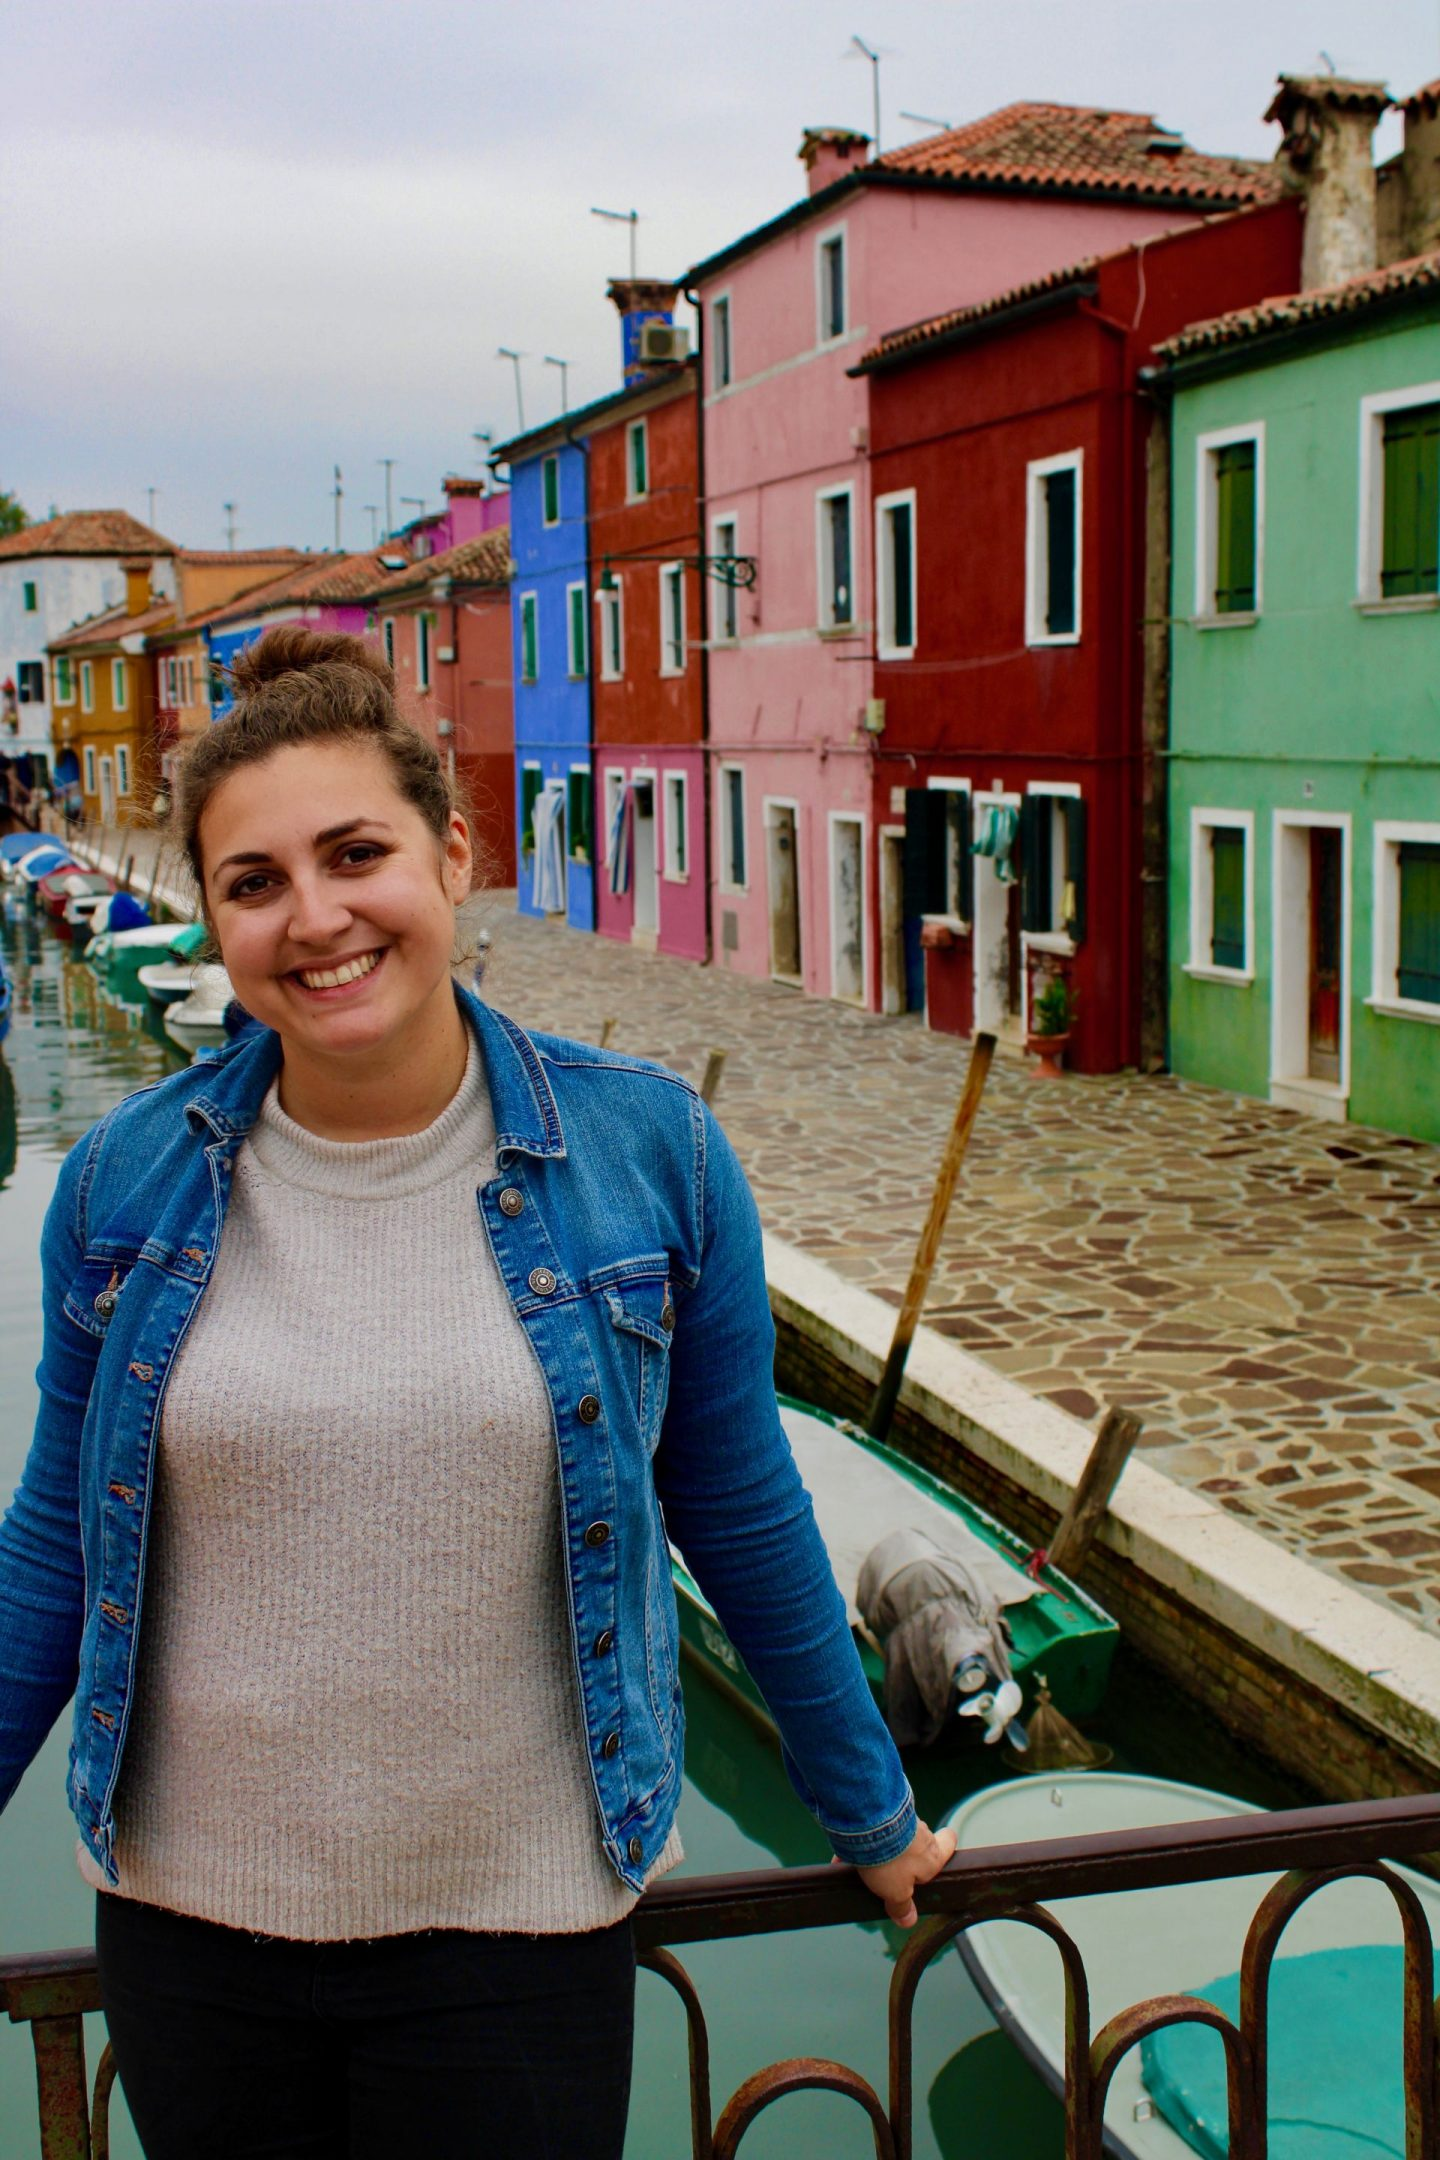 Nell on a bridge on the island of Burano in Venice, looking at the camera and smiling